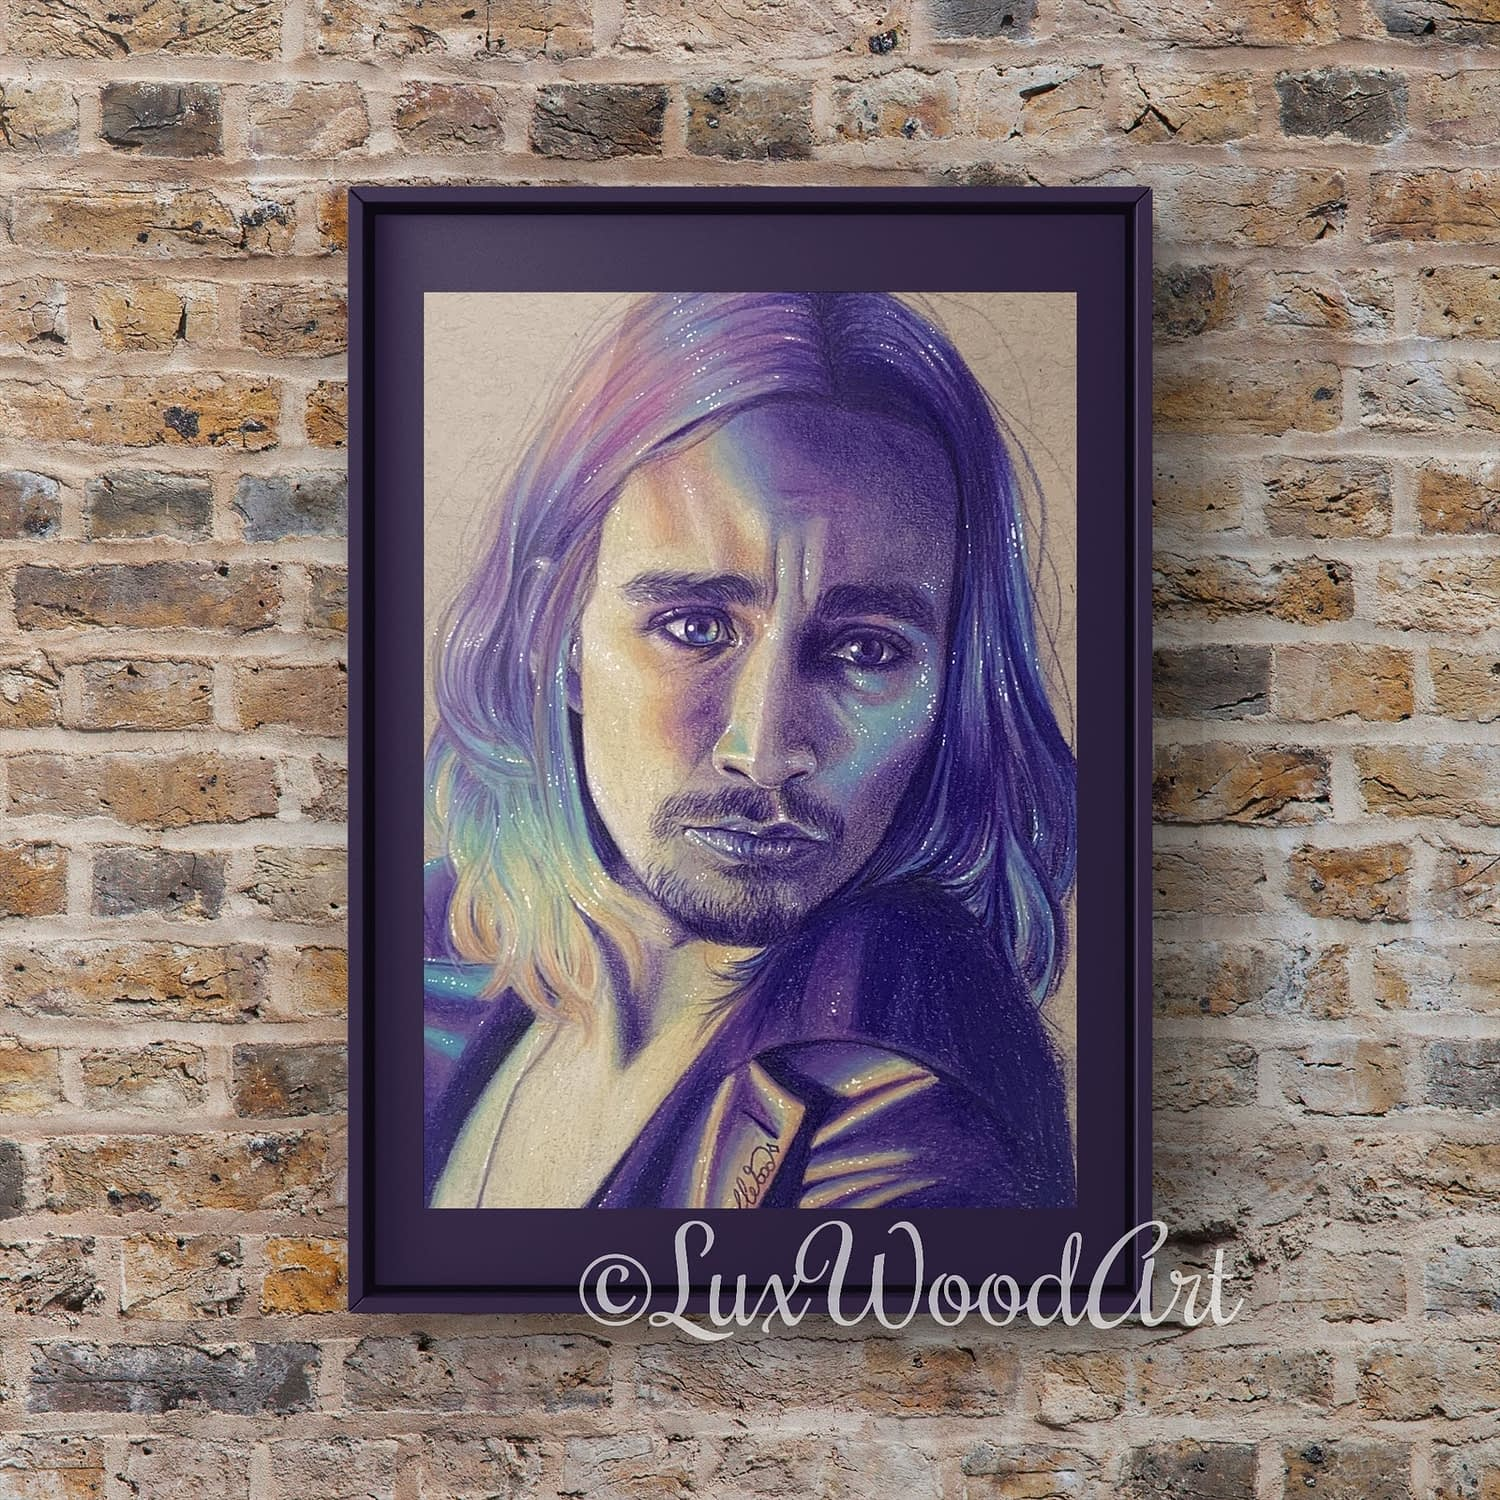 Robert Sheehan portrait 15 - Color pencil and white Posca pen on toned tan paper